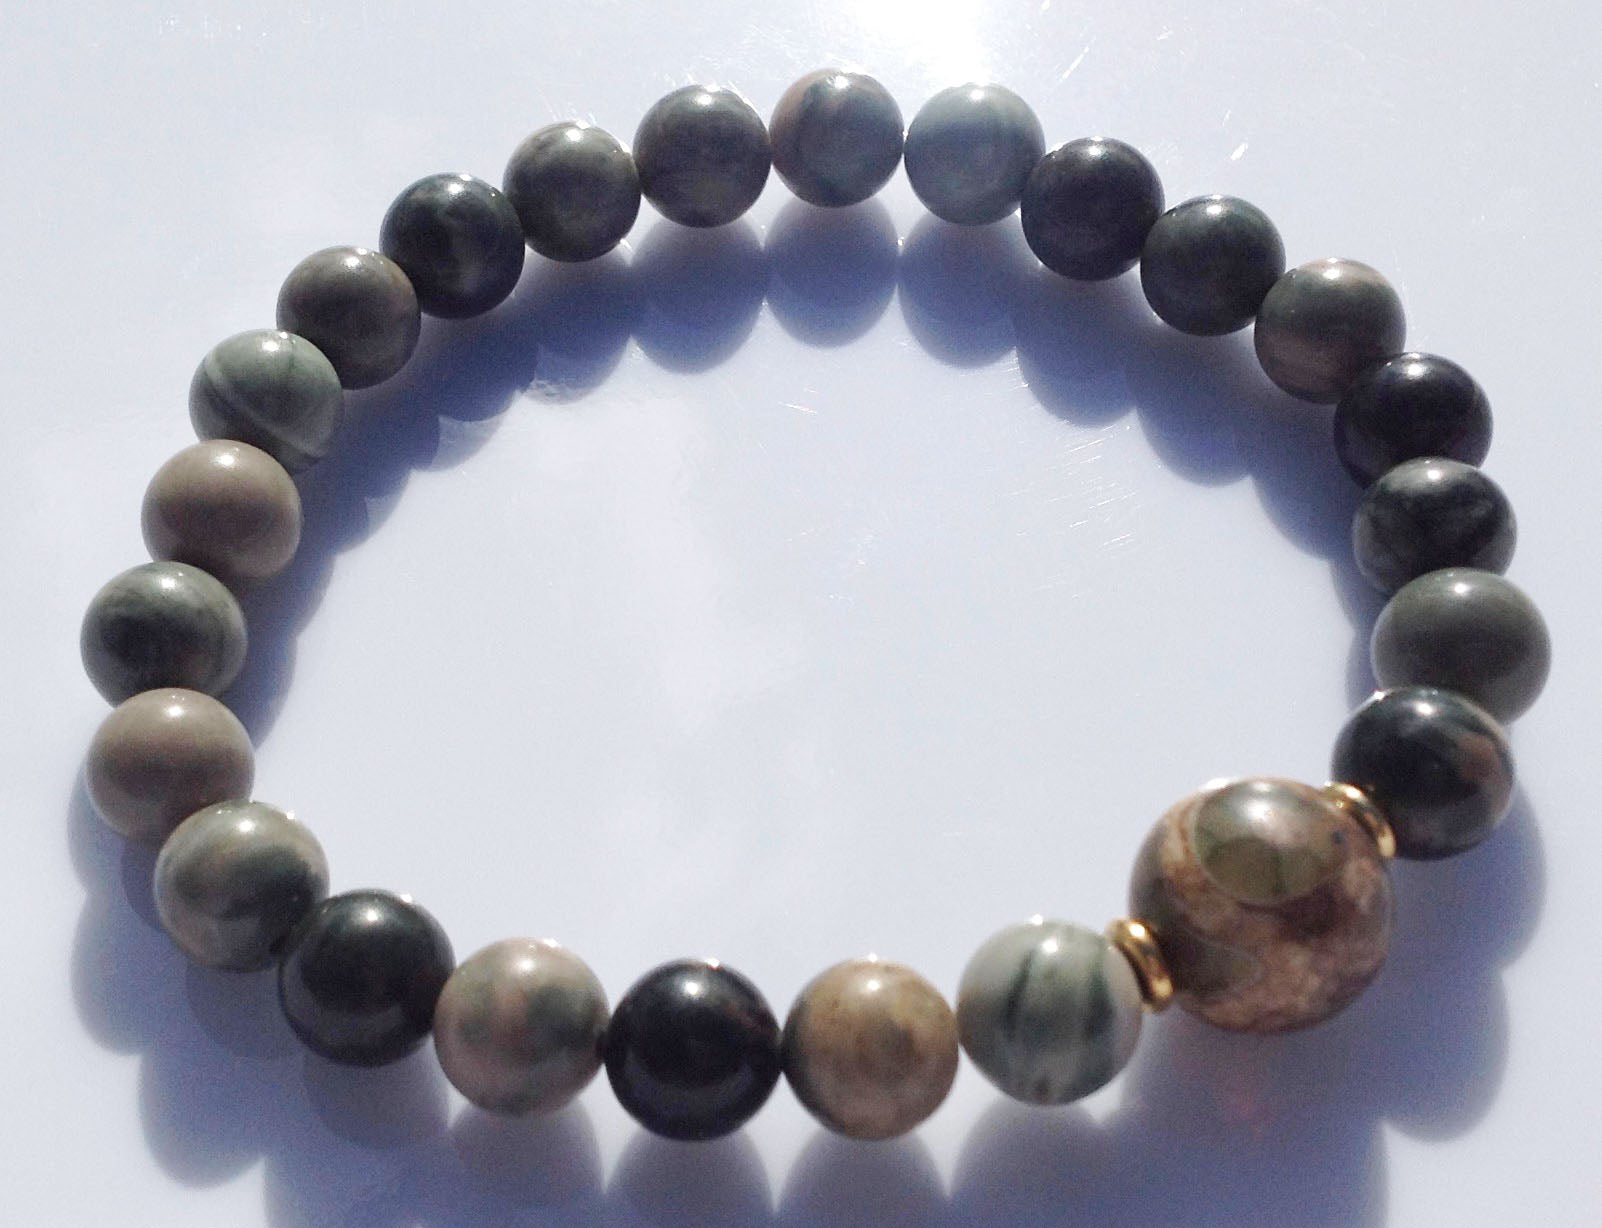 Ancient 3 Eye Dzi Bead Collection Jasper Stone & Gold Beads Yoga Meditation Wrist Mala Bracelet Root Base Chakra Healing Energy Reiki Focus